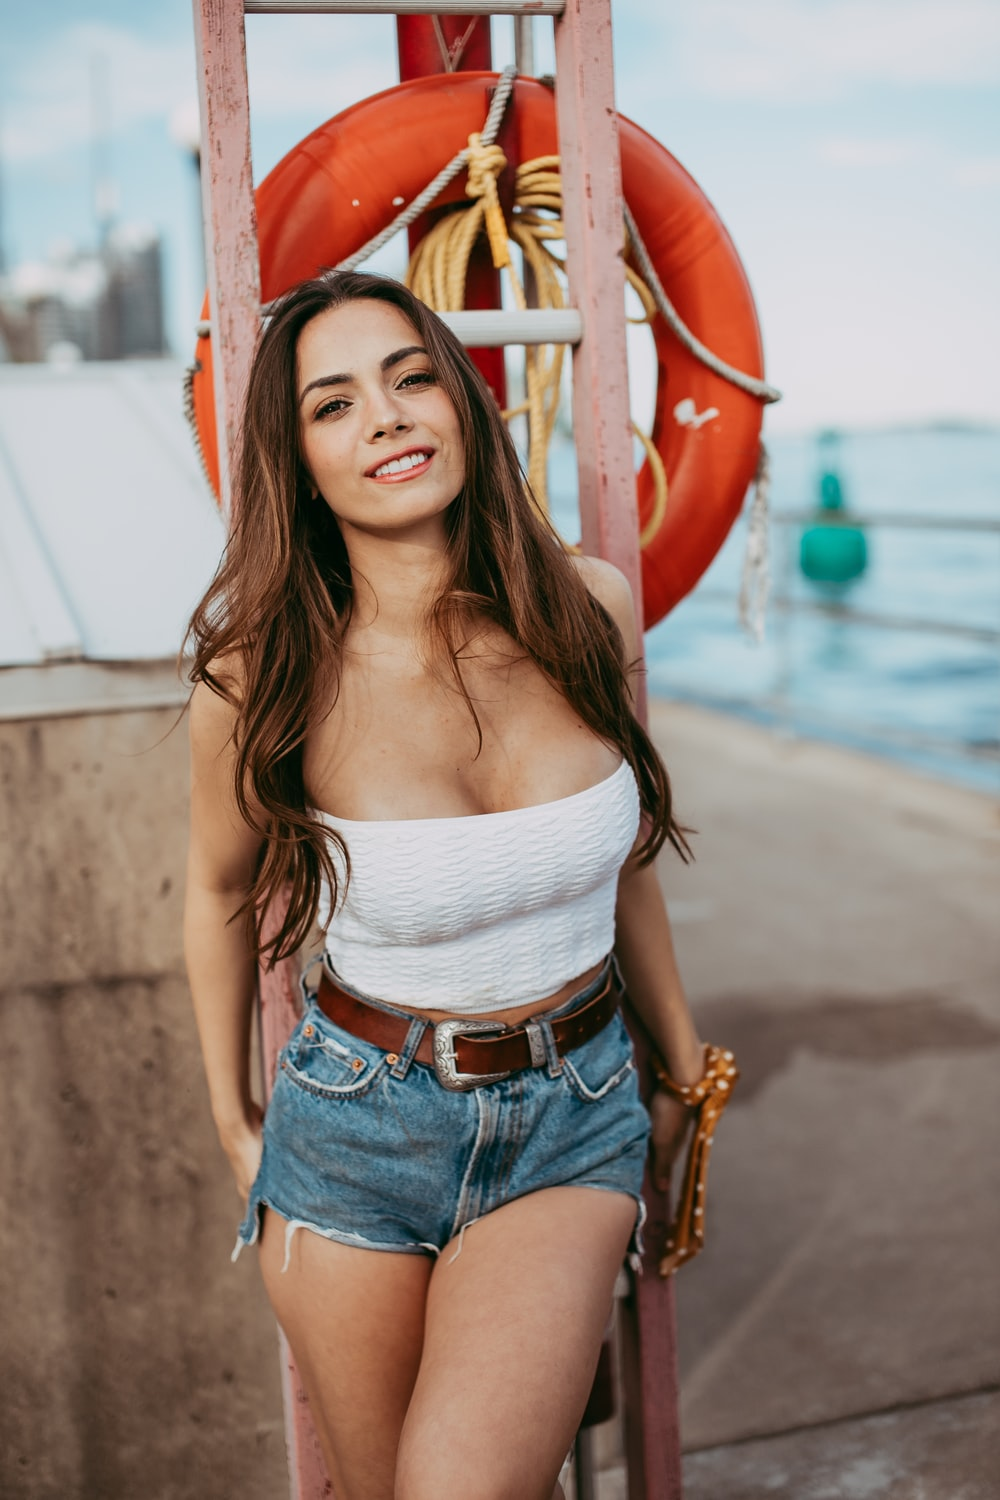 woman in white tank top and blue denim shorts standing near red metal railings during daytime